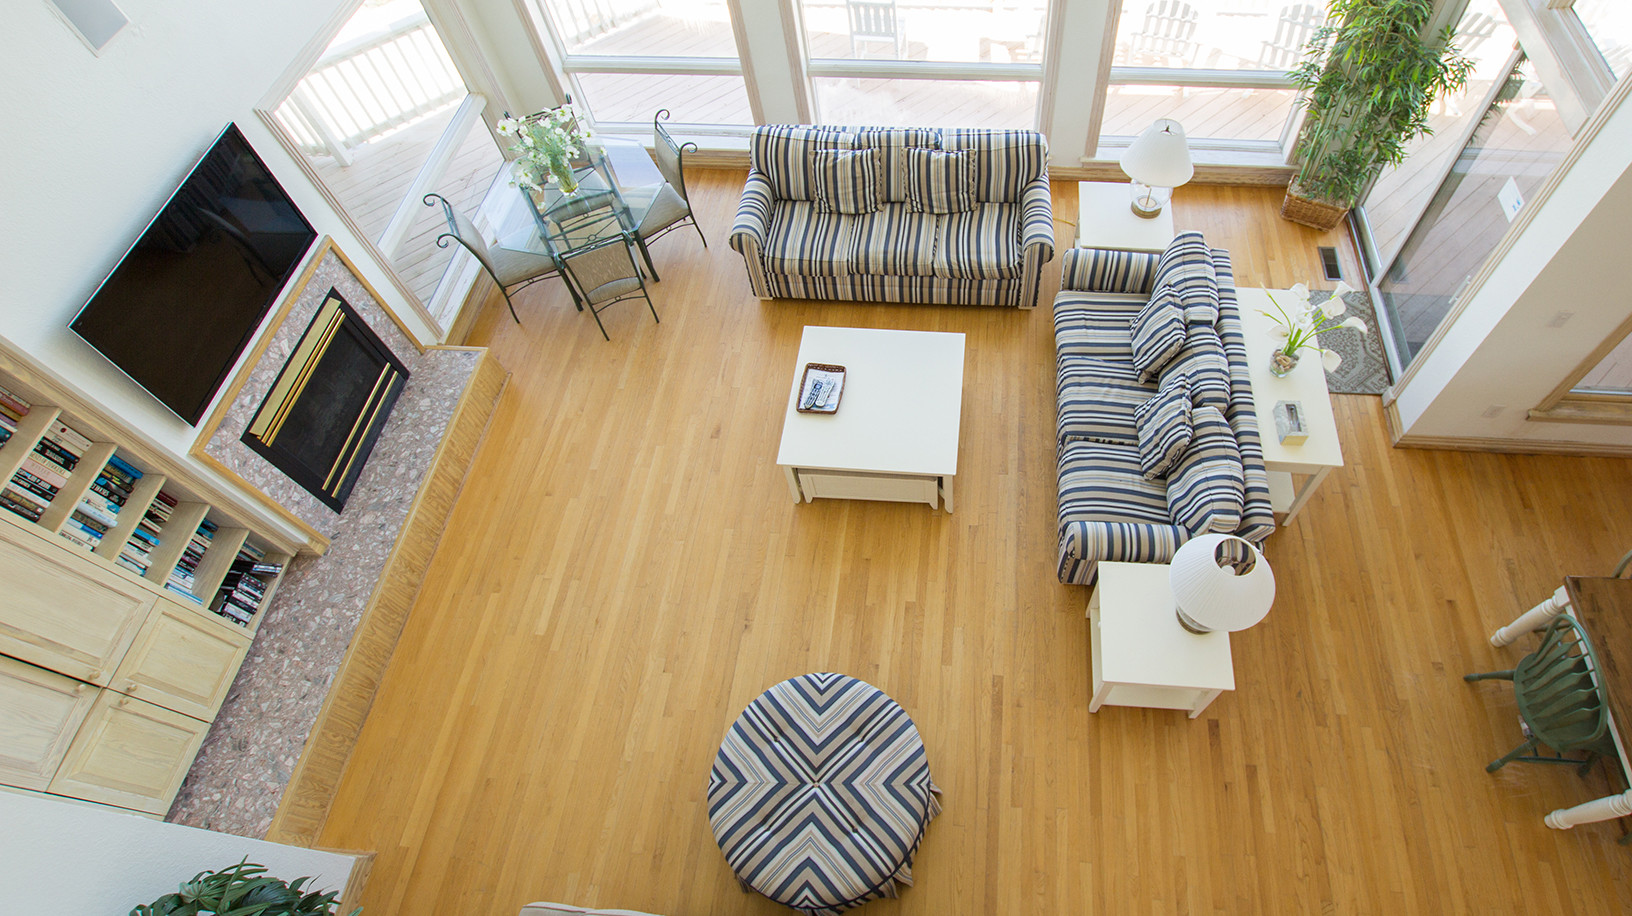 jay's hardwood floors of seasars palace vacation rental twiddy company for photos